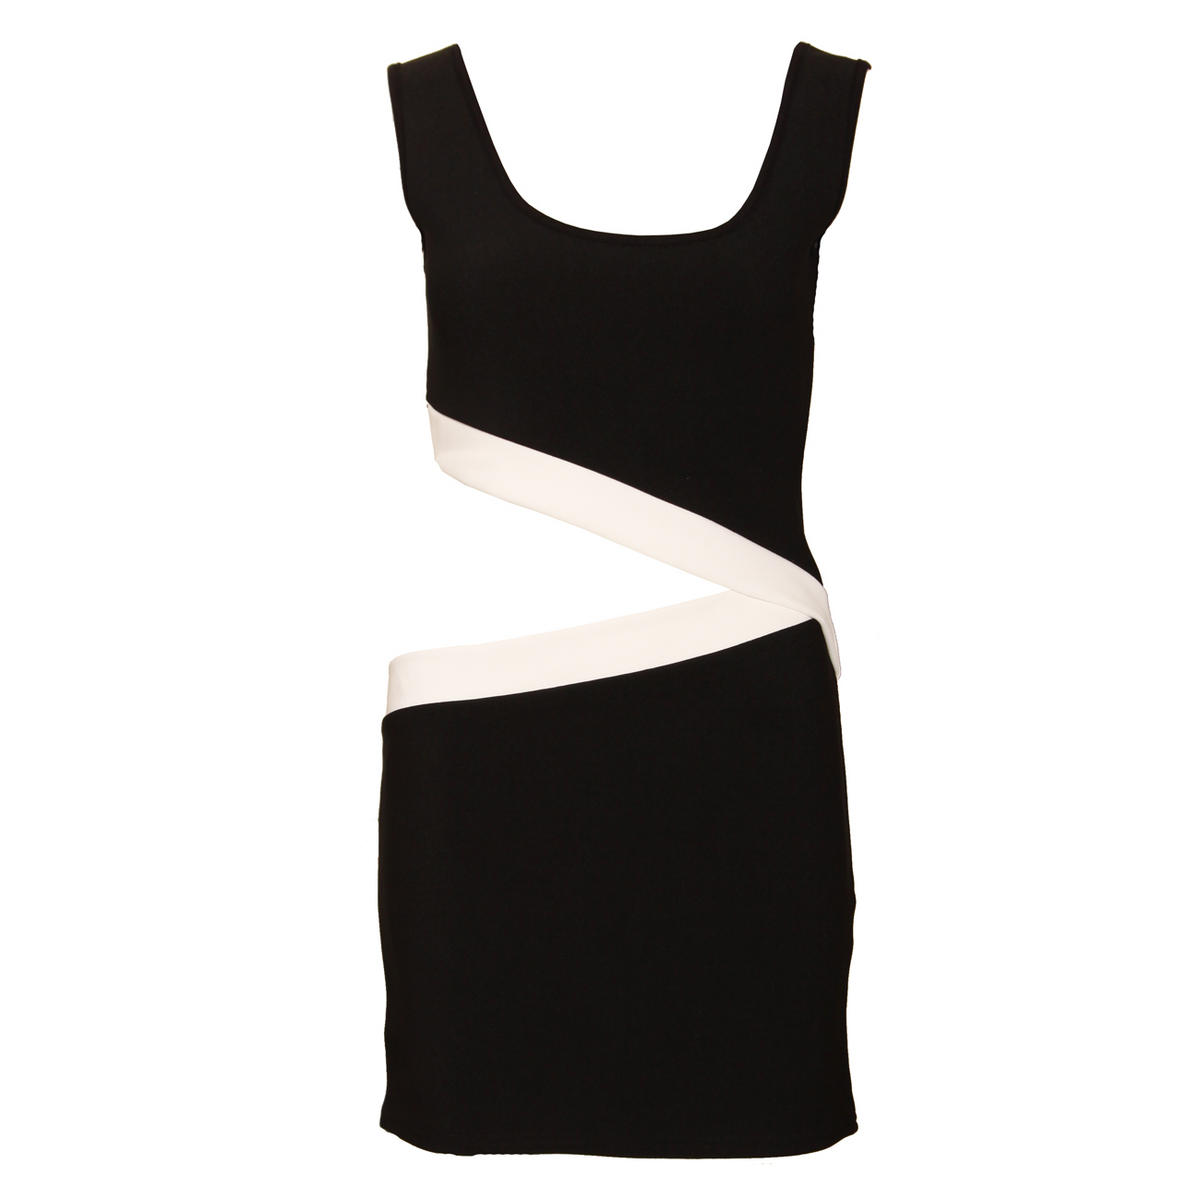 Monochrome Cut Out Dress Preview